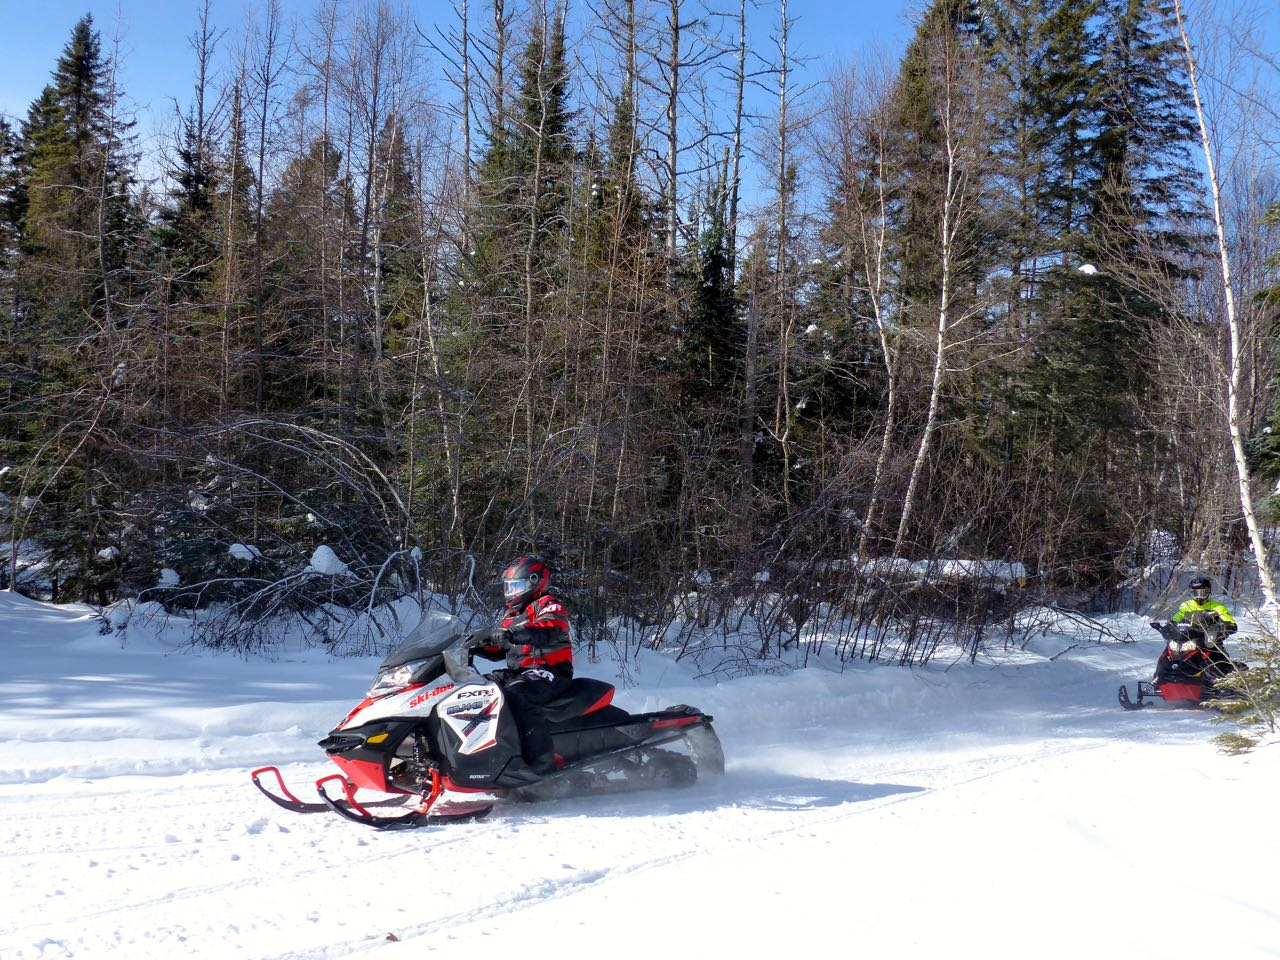 Riding ski doo sleds on OFSC snowmobile trail in barry's bay ontario snowmobiling